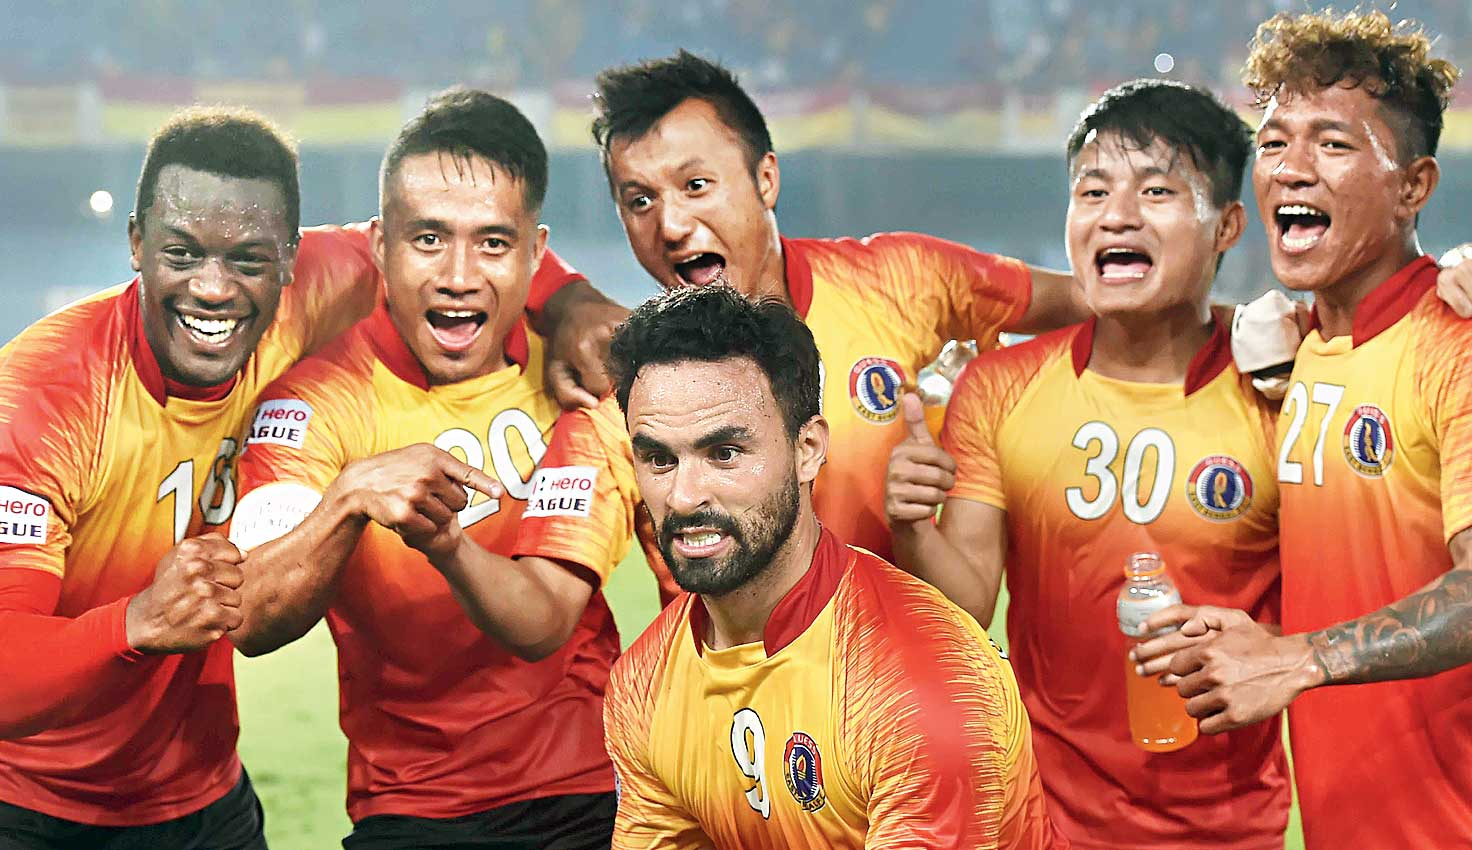 East Bengal players celebrate after the win on Thursday.